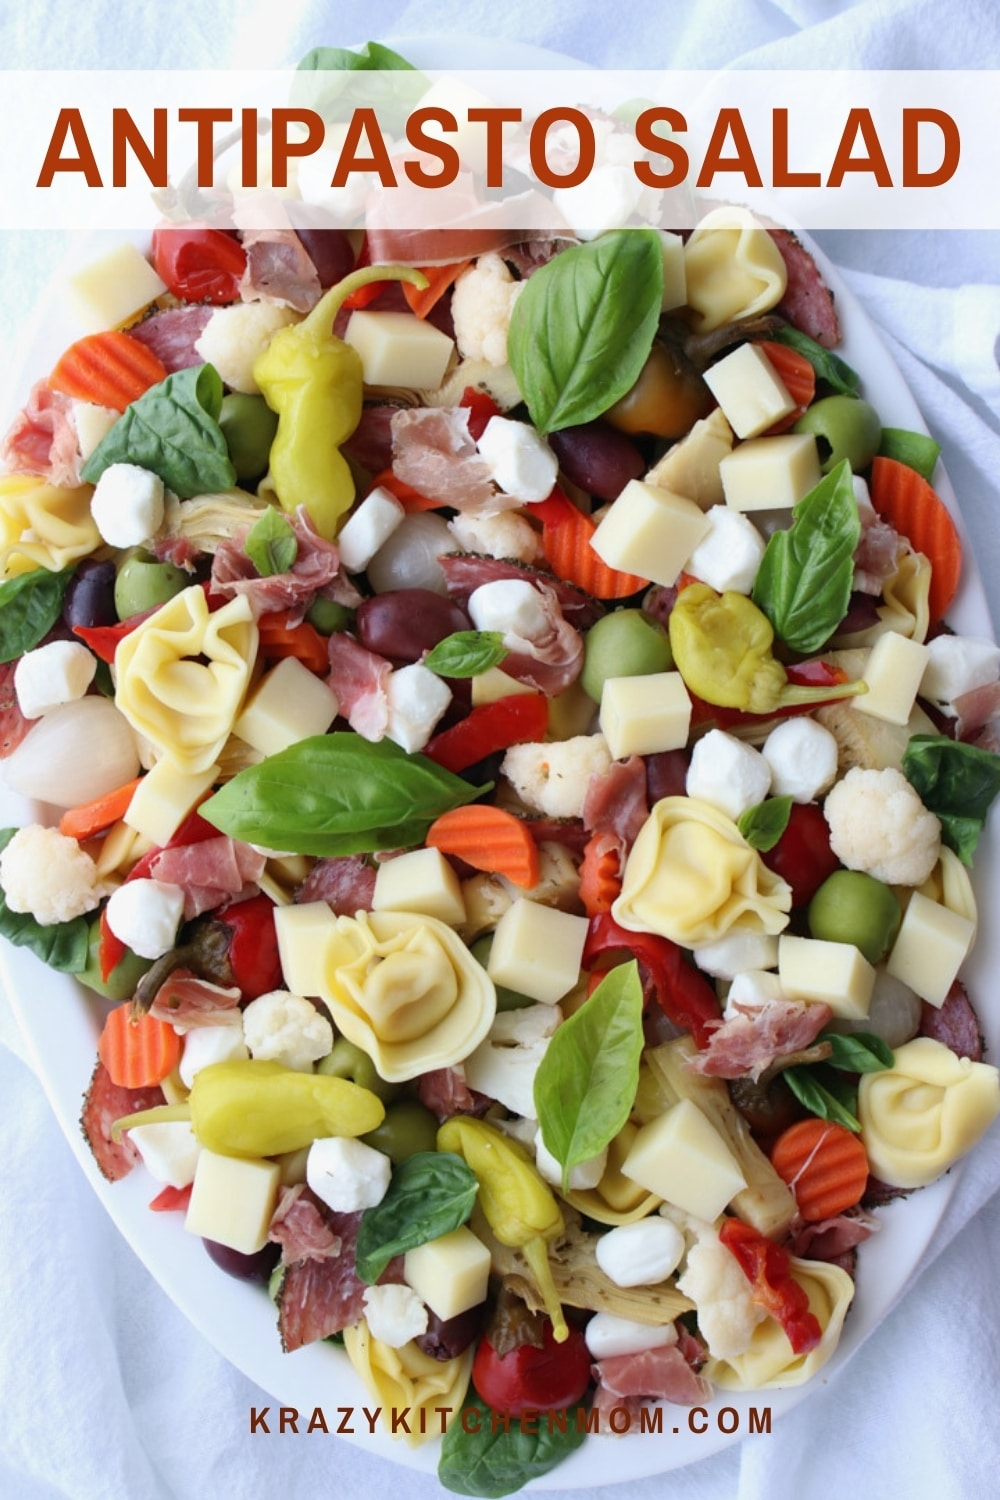 There is something for everyone on this Italian-style salad platter. It's loaded with vegetables, meats, and cheeses. via @krazykitchenmom